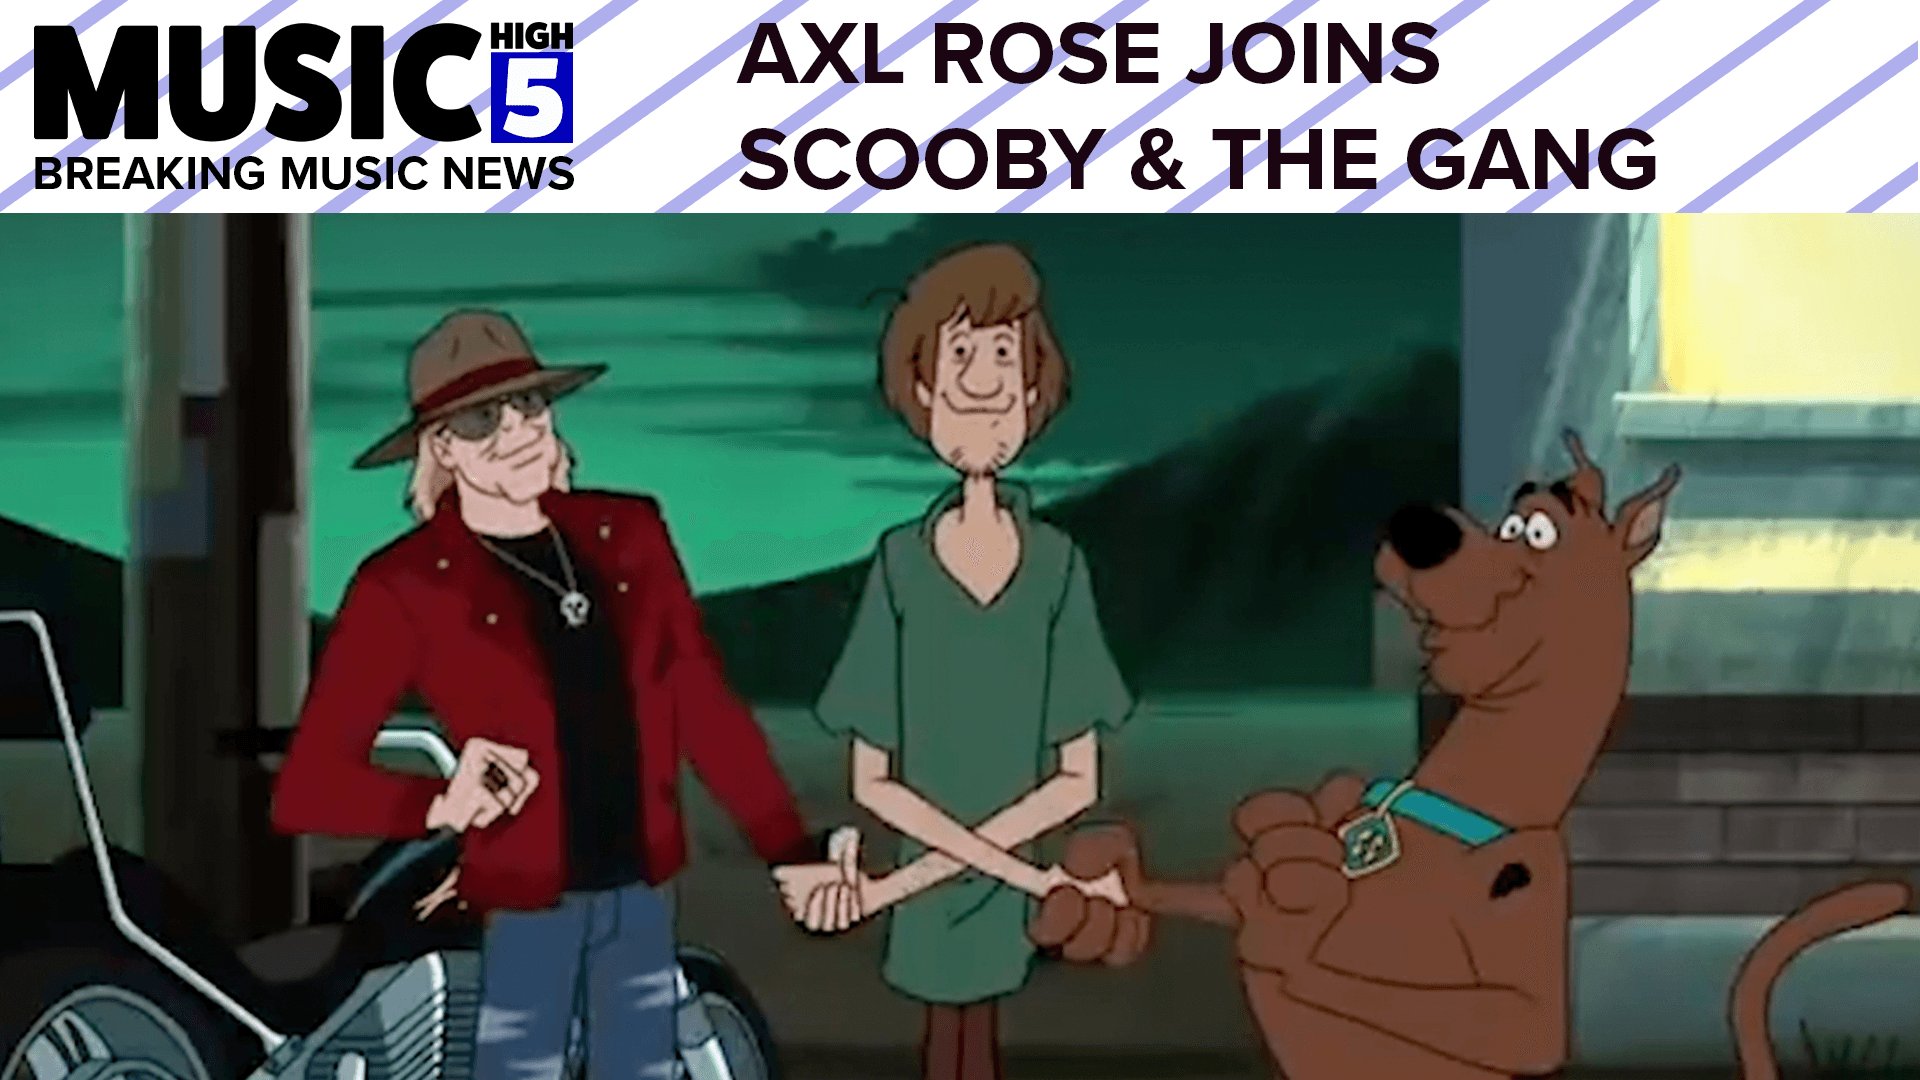 Axl Rose Gets Animated   Music High 5